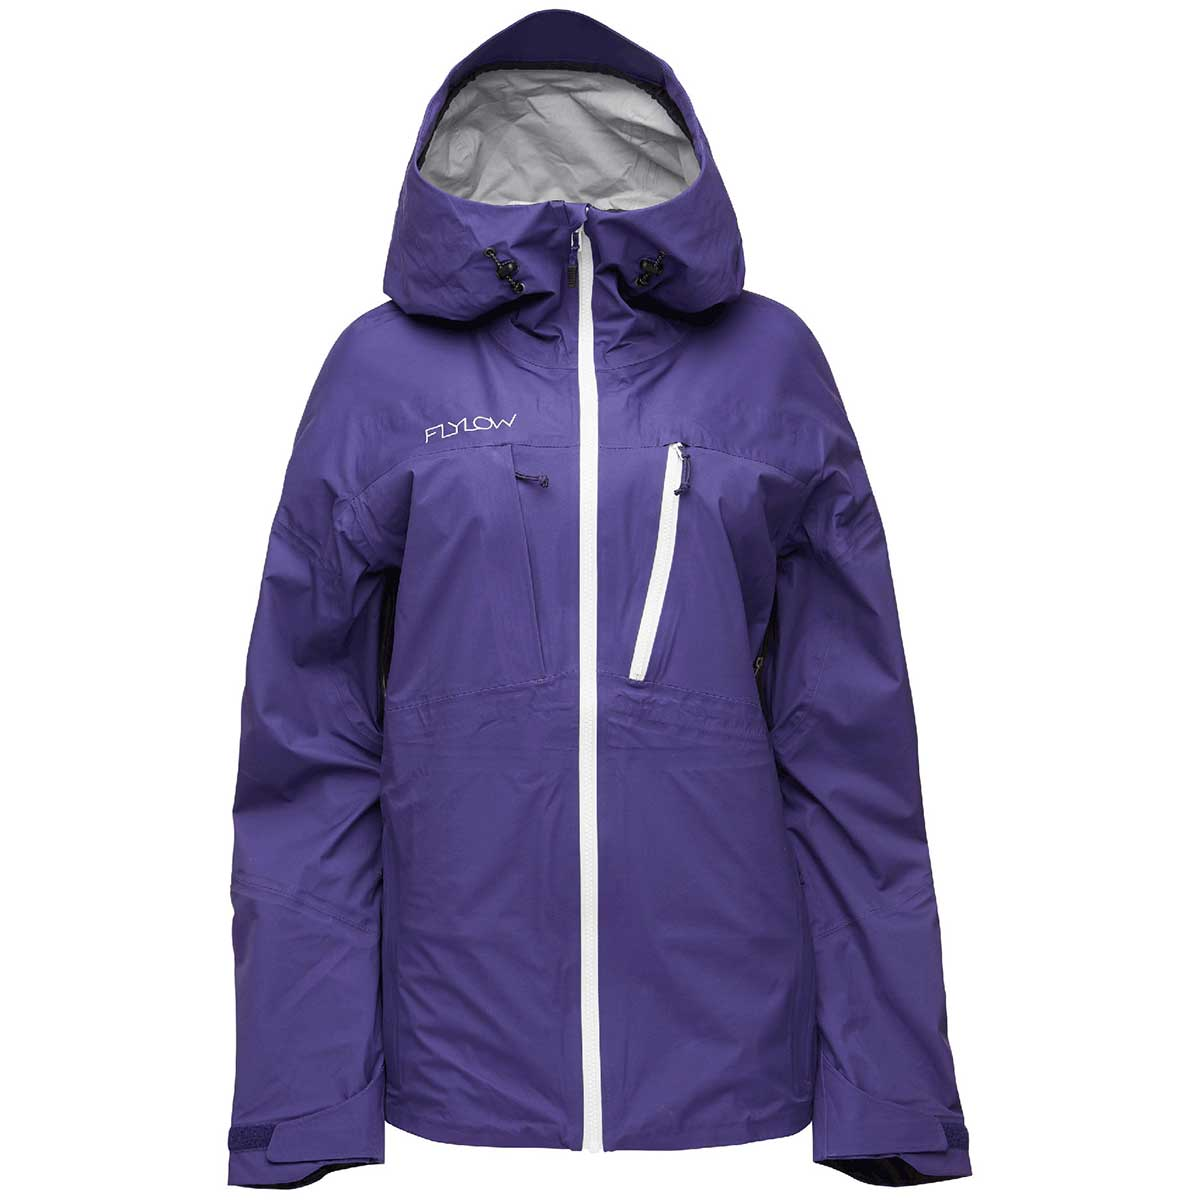 Flylow women's Domino Jacket in Astro front view